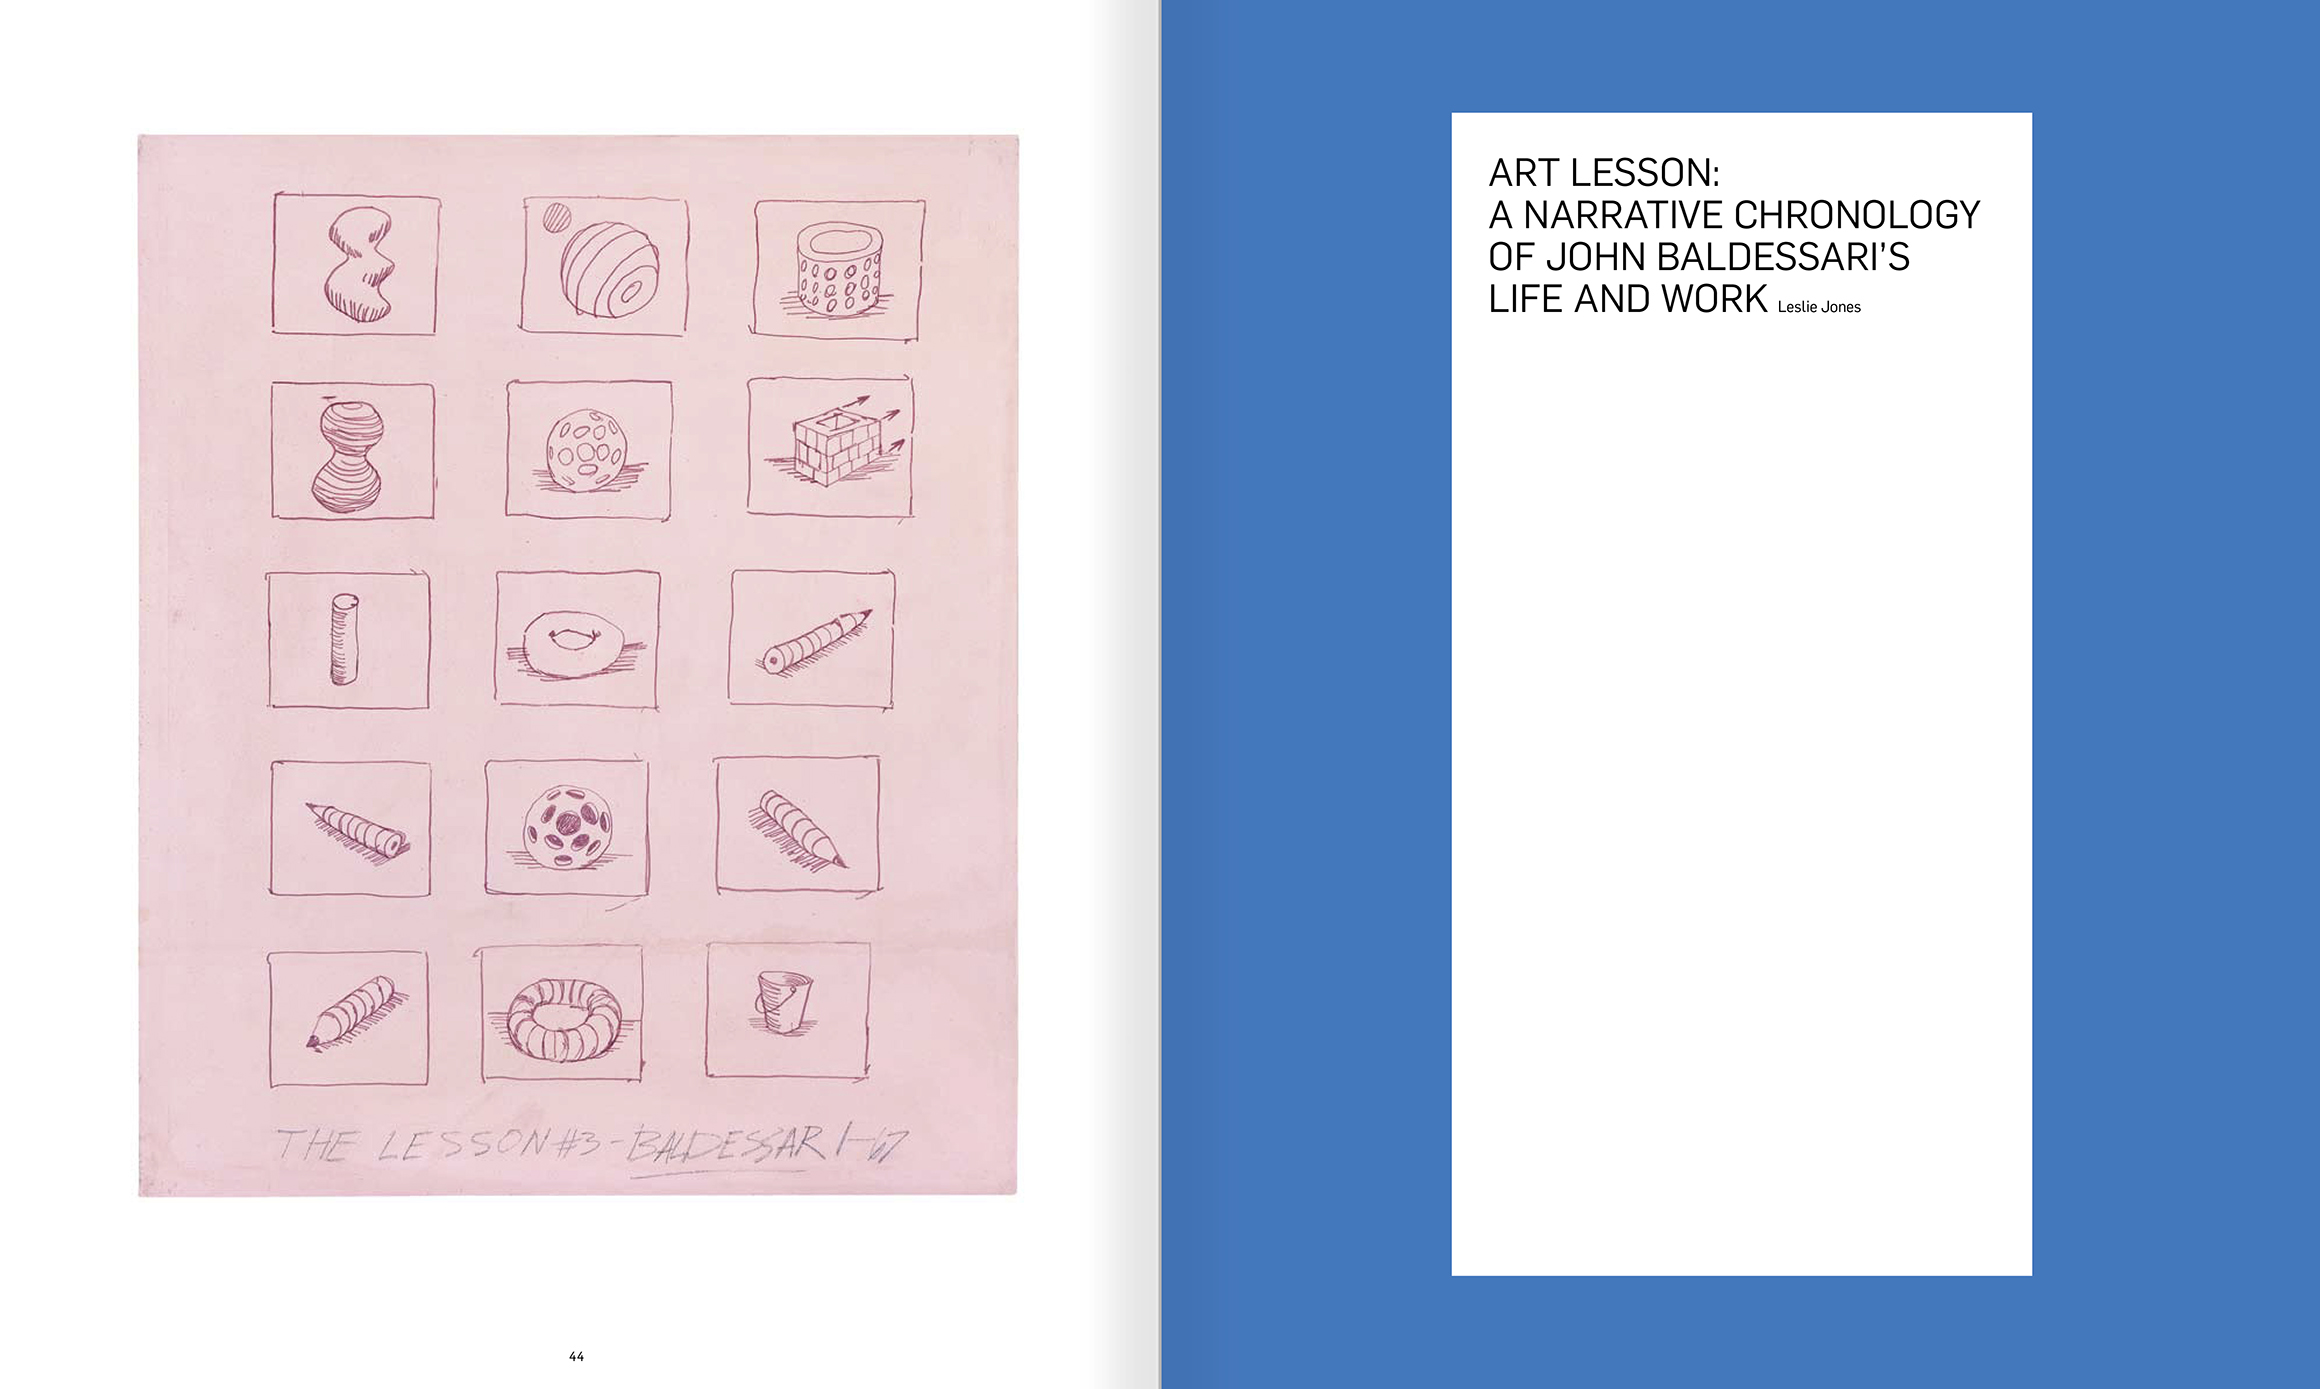 Selection from the catalogue 'John Baldessari. Pure Beauty', pages 44 and 45